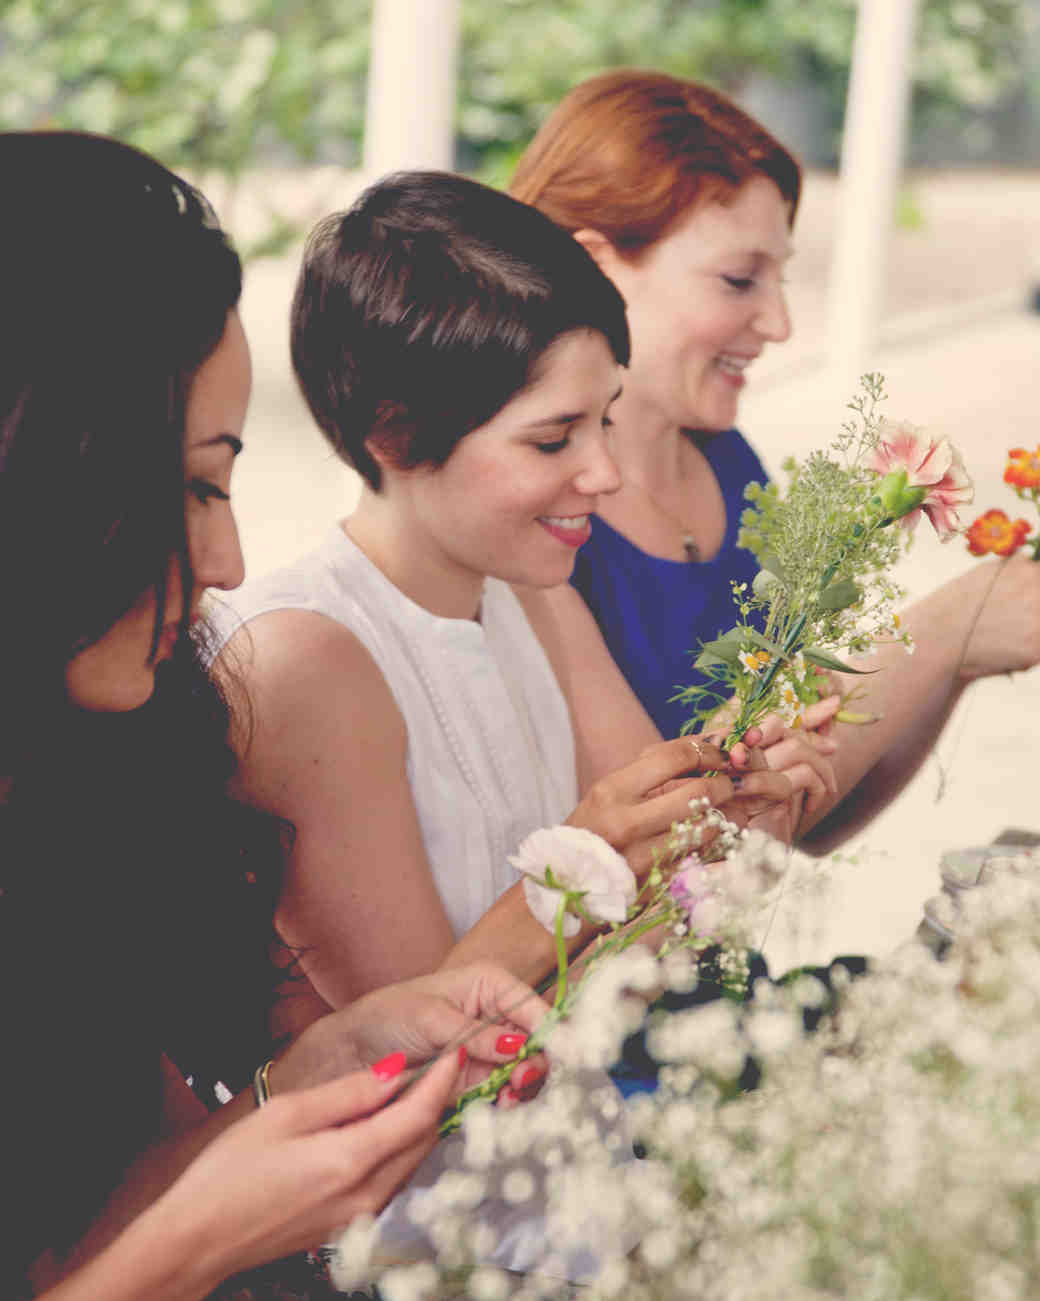 Women Crafting with Flowers